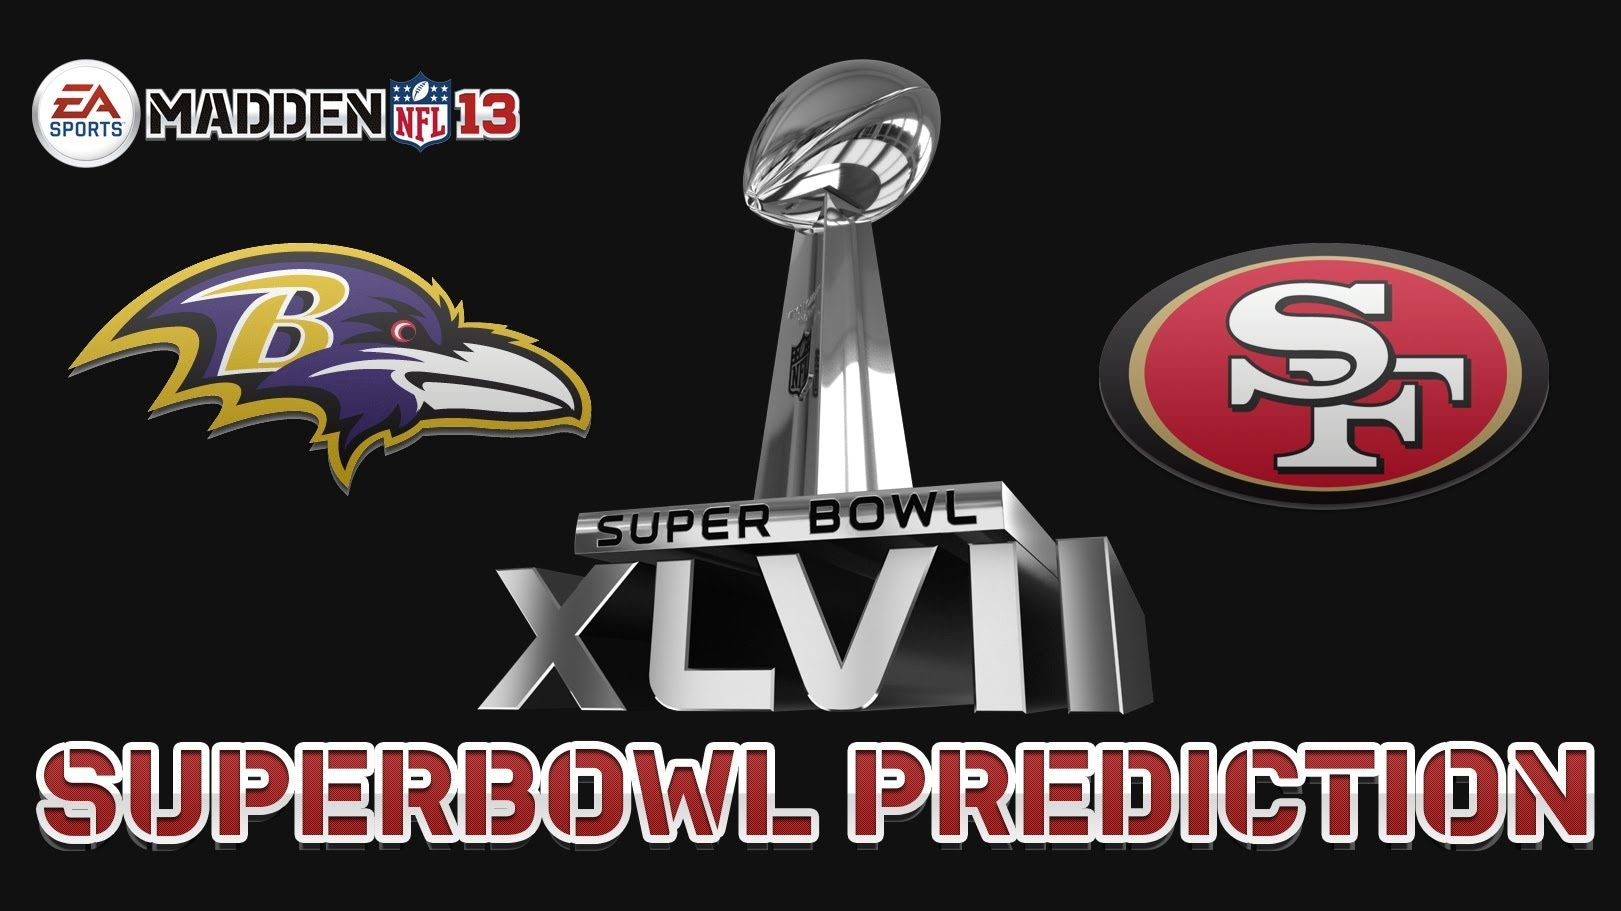 cool Super Bowl 2013 Predictions Ravens vs. 49ers in